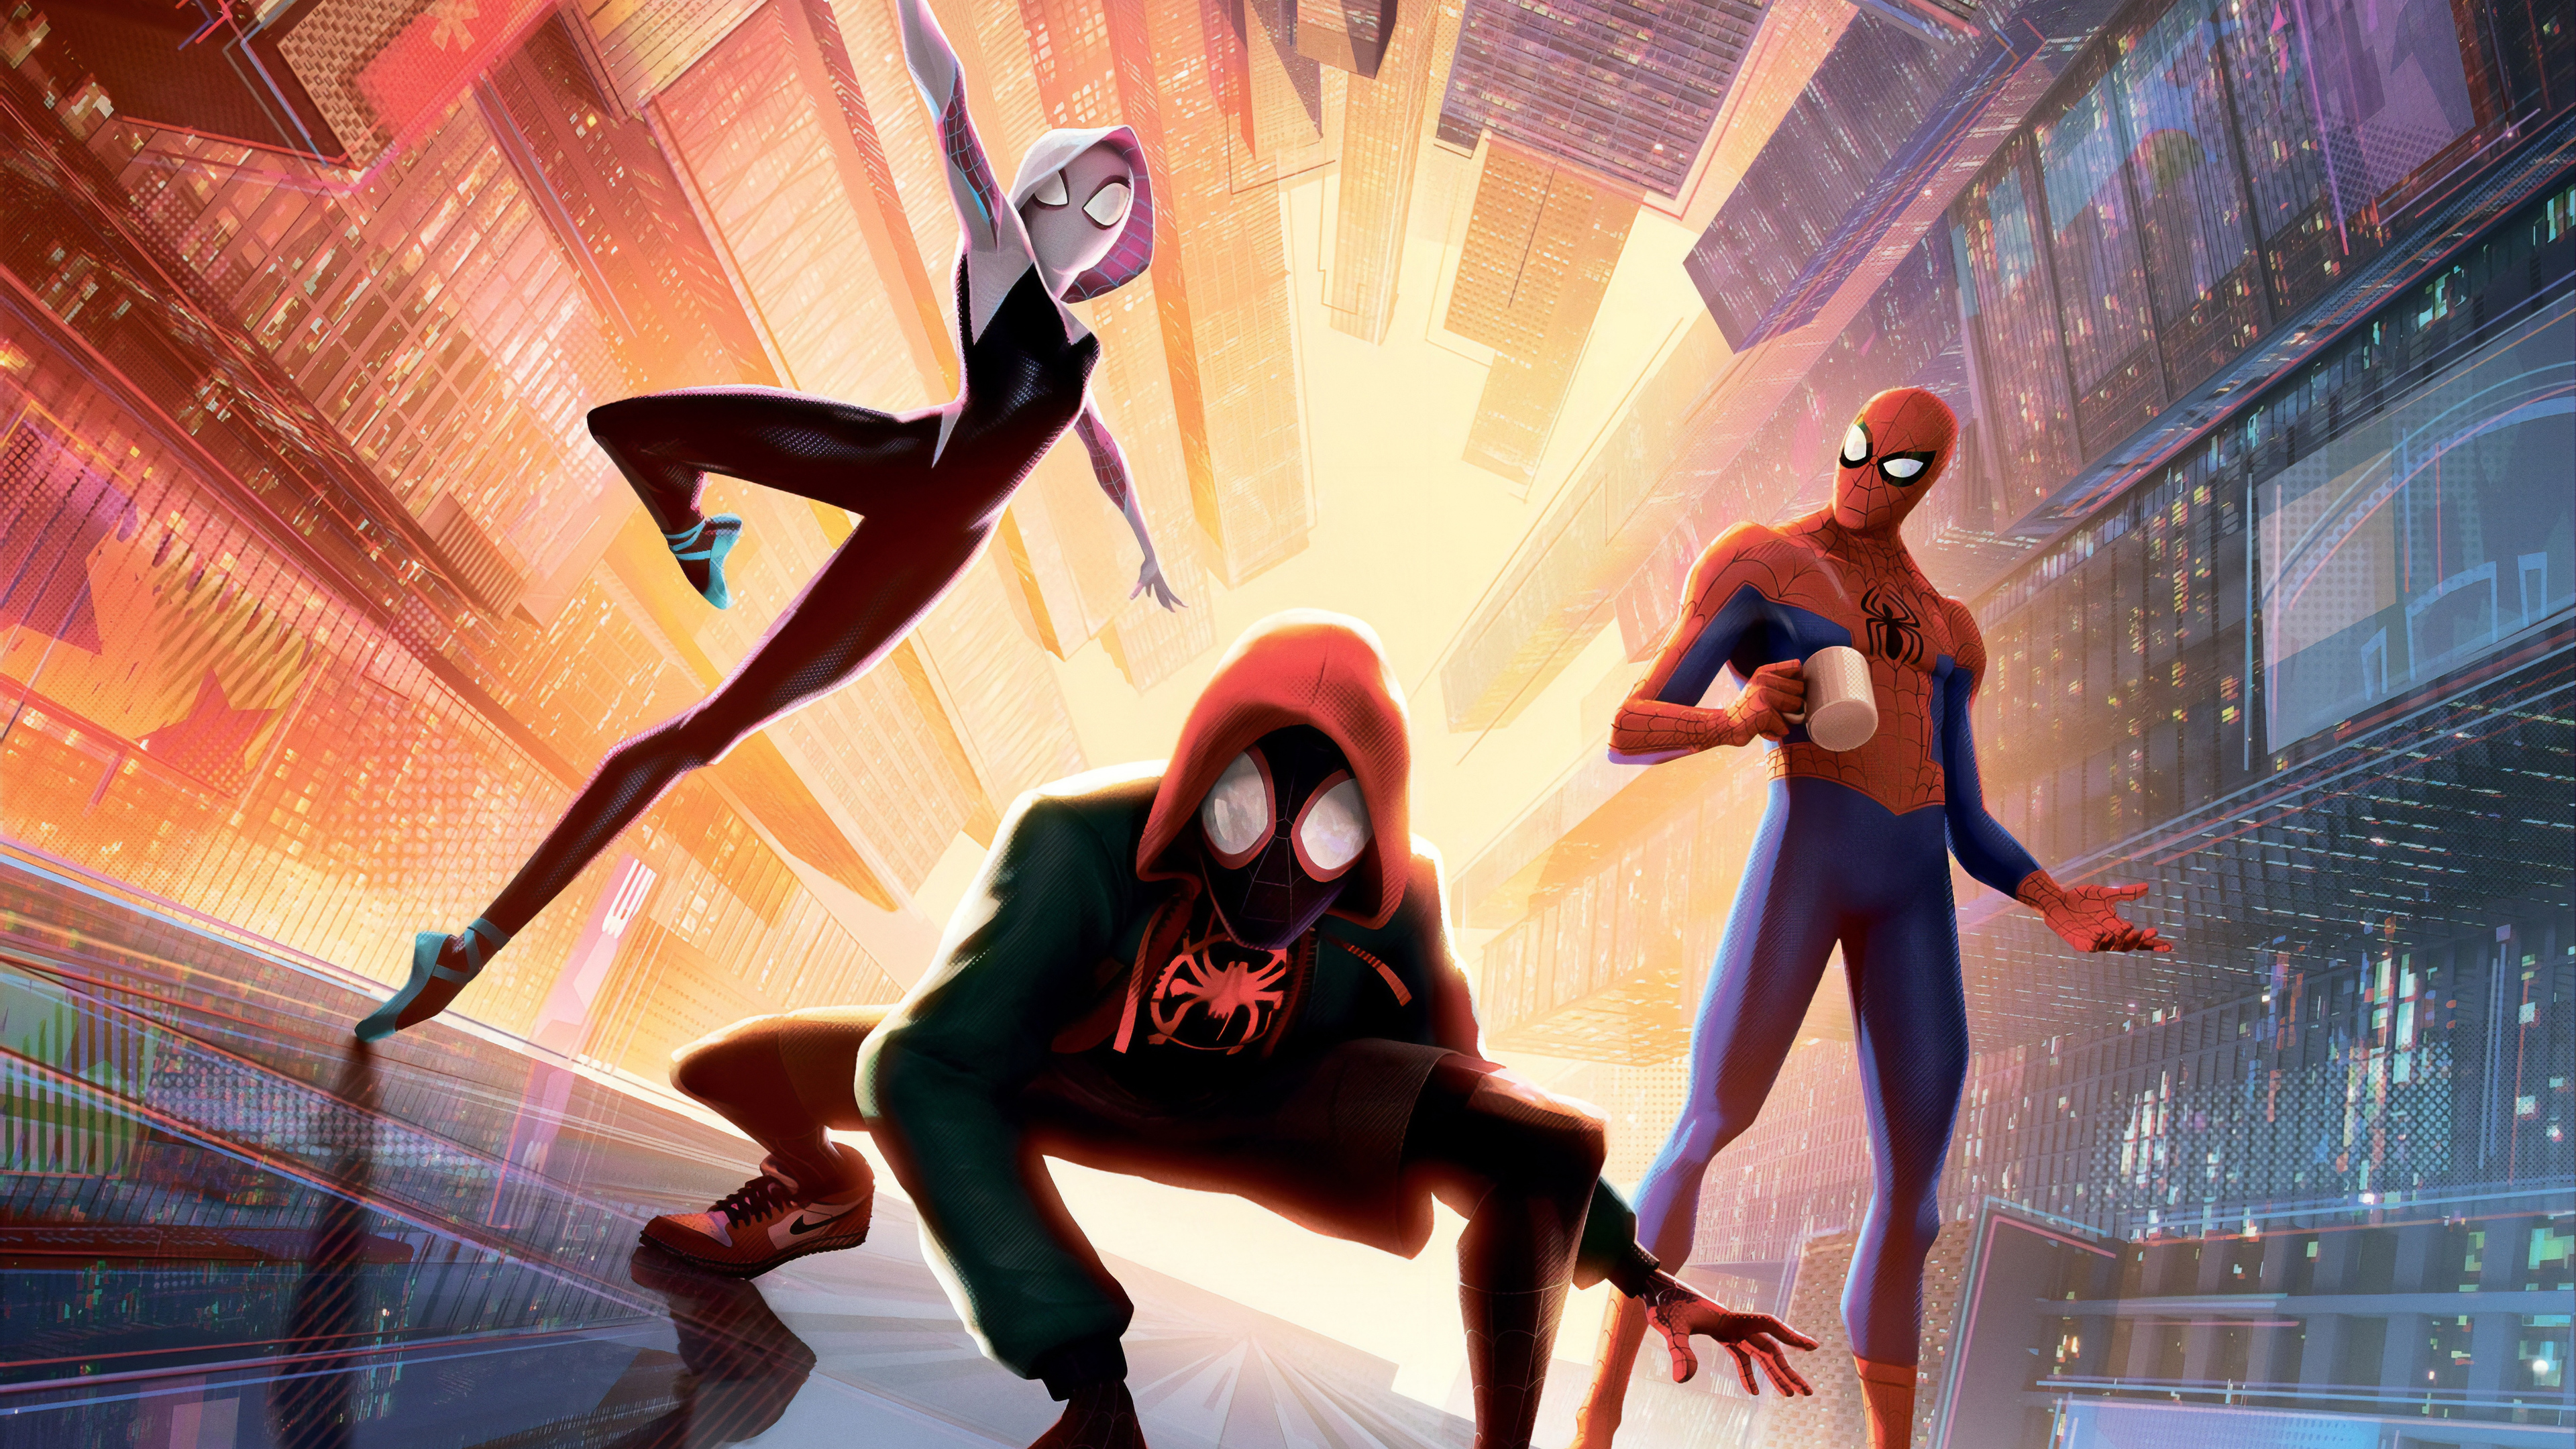 spiderman into the spider verse new new 4k 1560535170 - SpiderMan Into The Spider Verse New New 4k - spiderman wallpapers, spiderman into the spider verse wallpapers, movies wallpapers, hd-wallpapers, animated movies wallpapers, 4k-wallpapers, 2018-movies-wallpapers